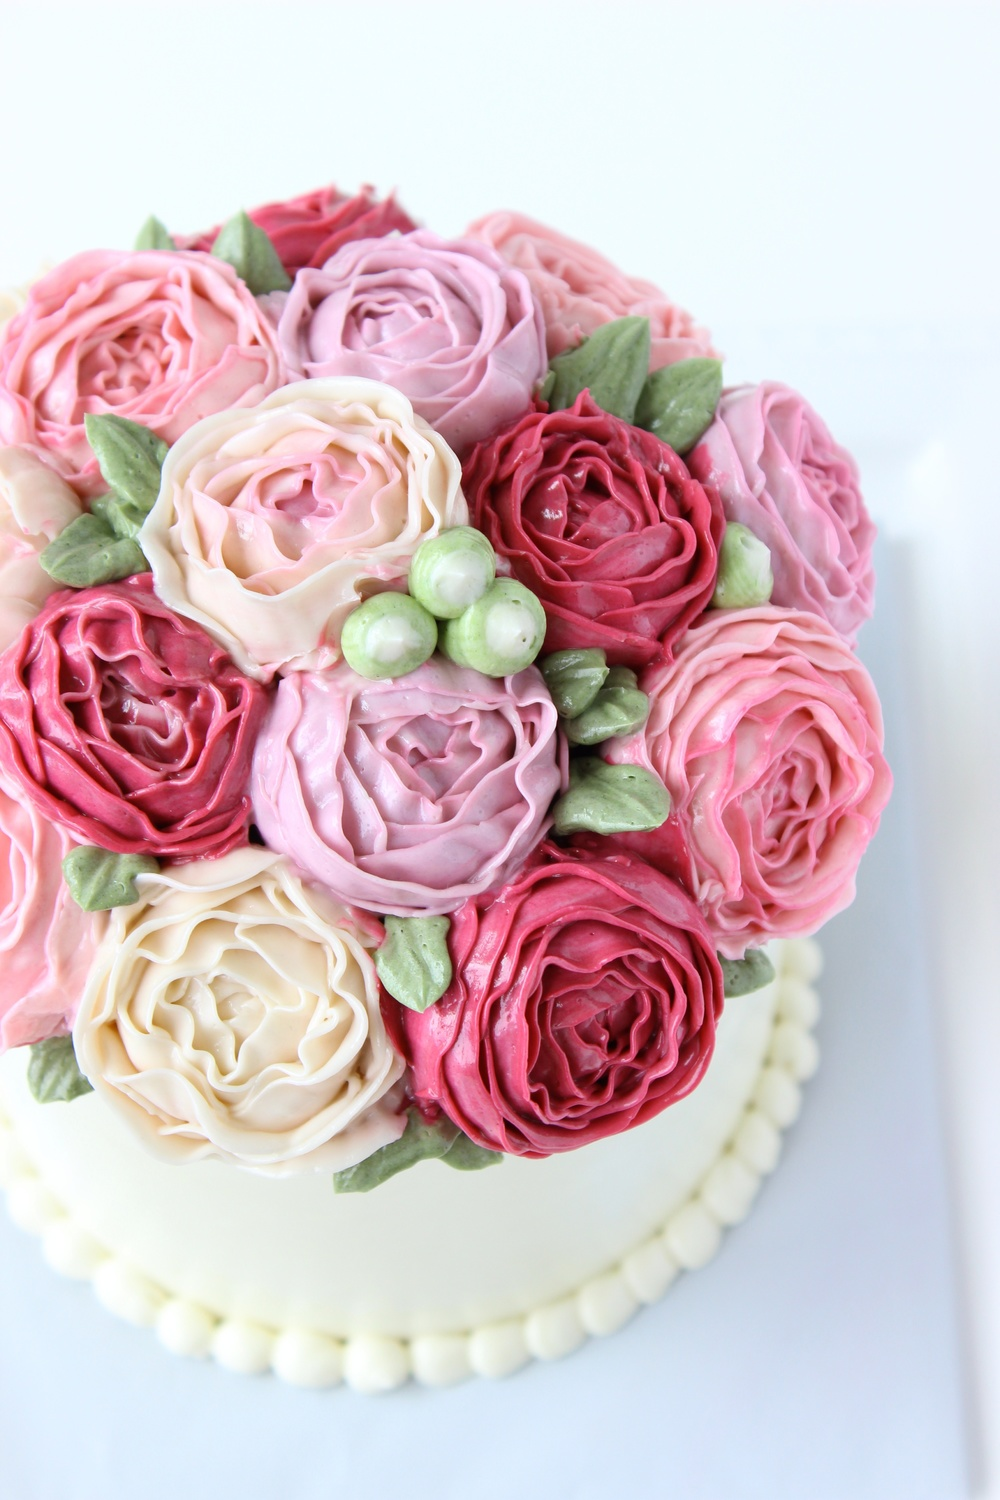 eatcakebemerry_pink_buttercream_flower_cake_closeup.jpg